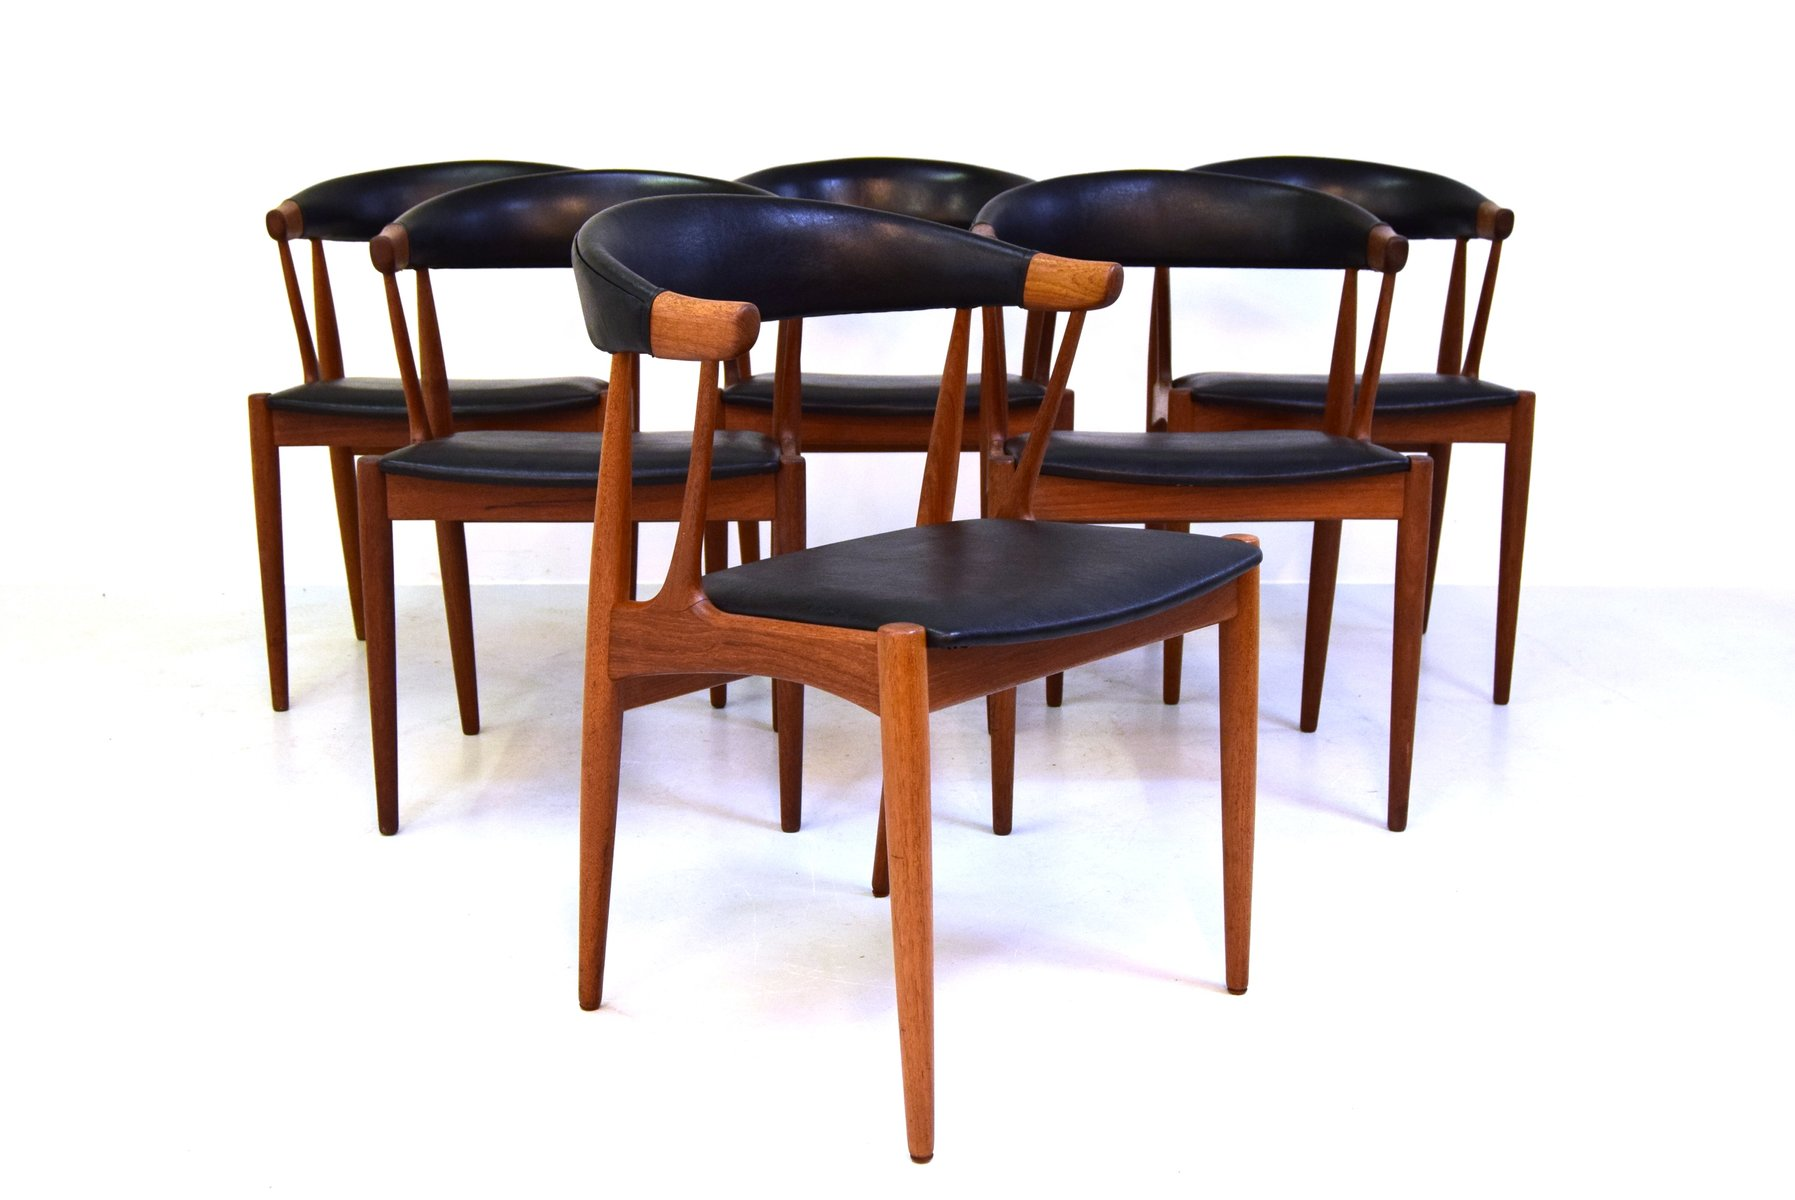 Model Ba 113 Dining Chairs By Brdr Johannes Andersen For Andersens Møbelfabrik Set Of 6